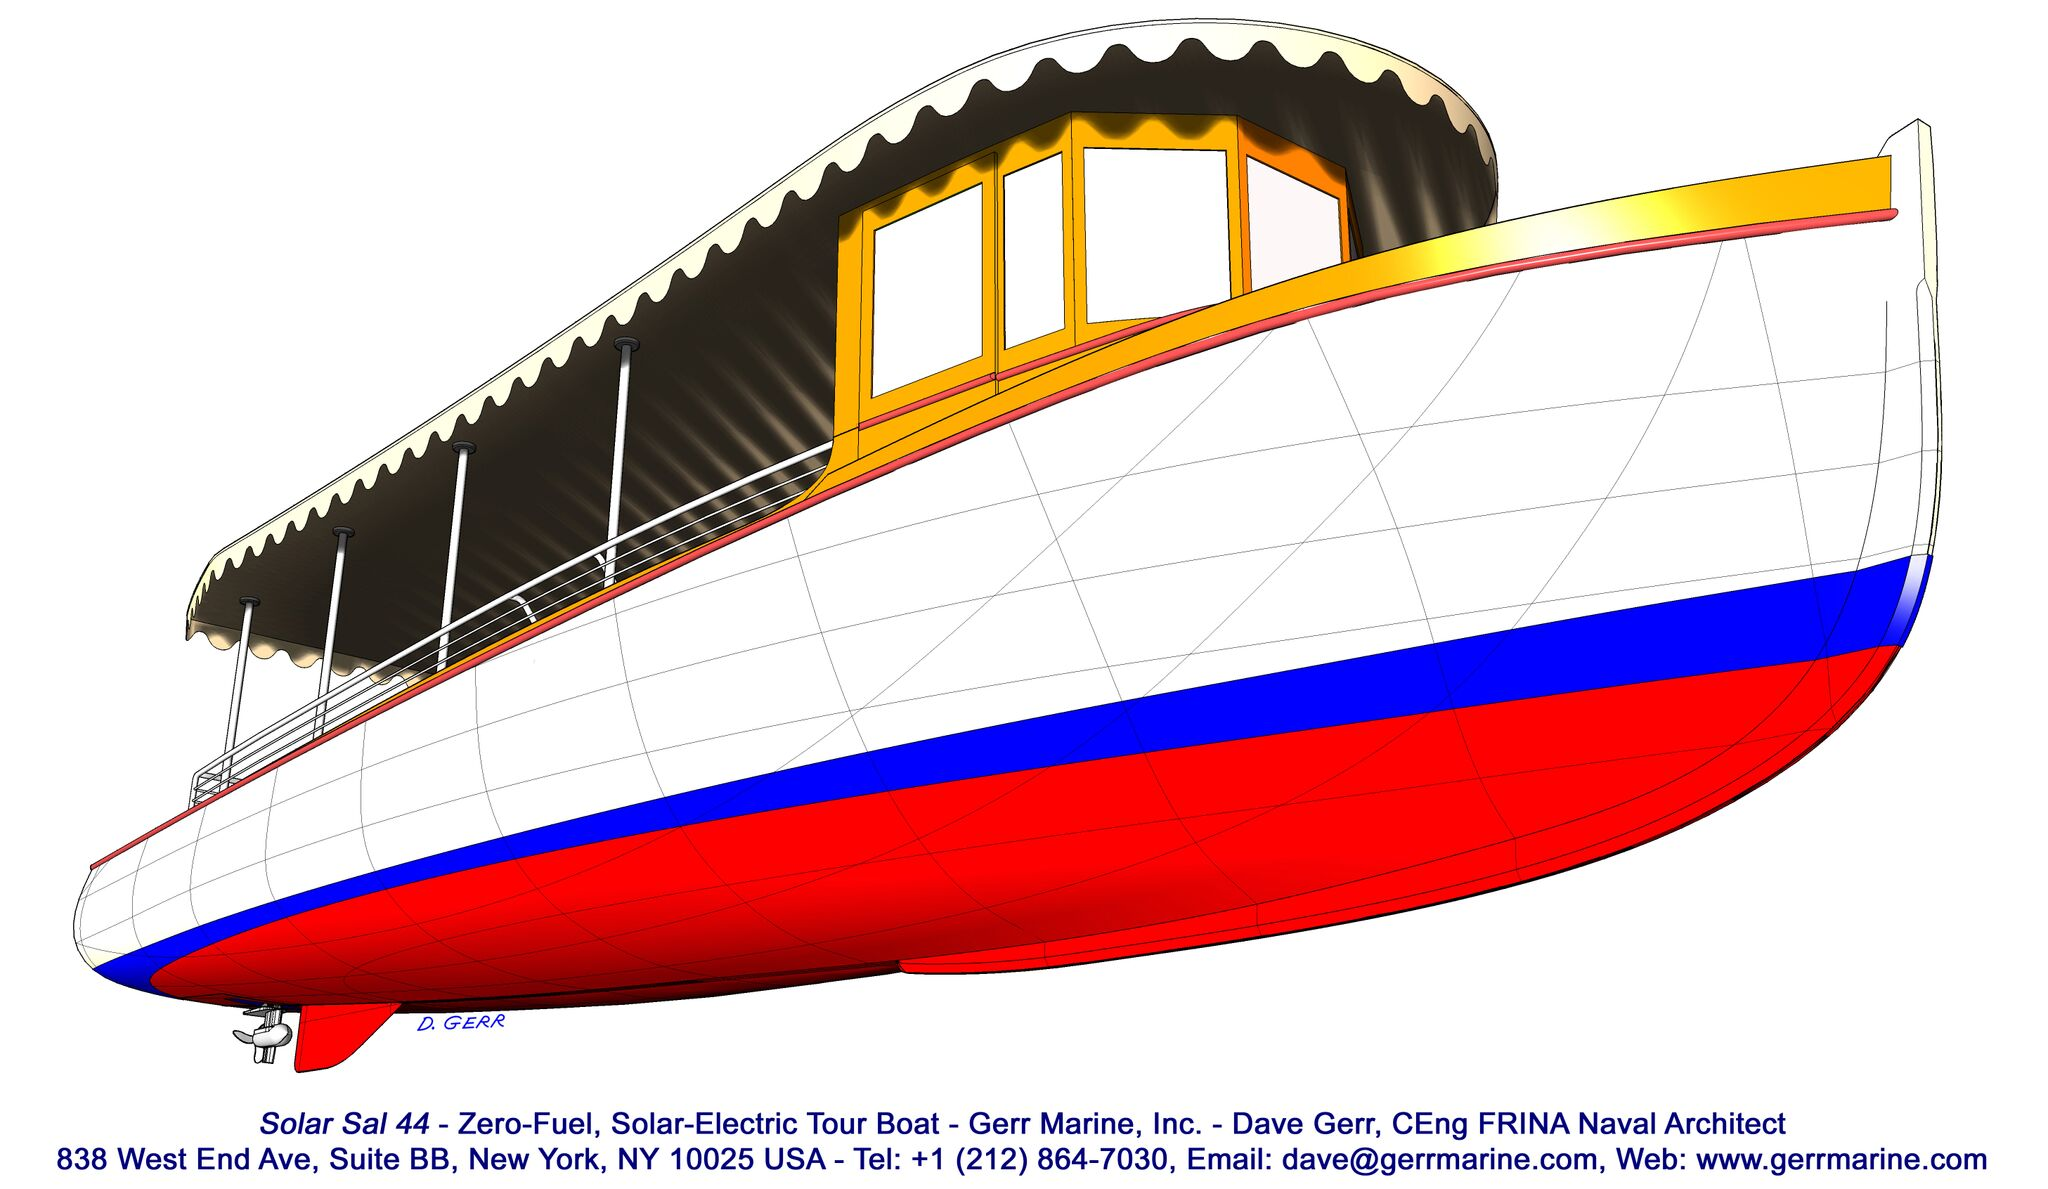 The hull shape of Dave Gerr's tour boat. Gerr already has a version on his drawing board that is a two stateroom cruising motorboat.